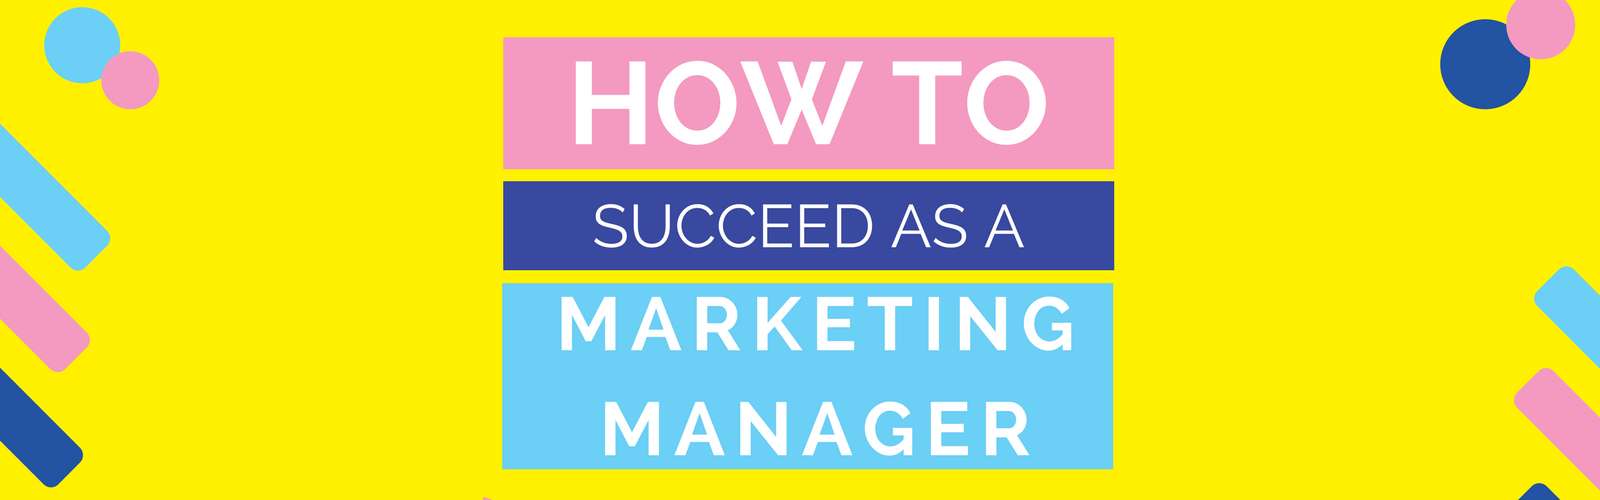 how to succeed as a marketing manager